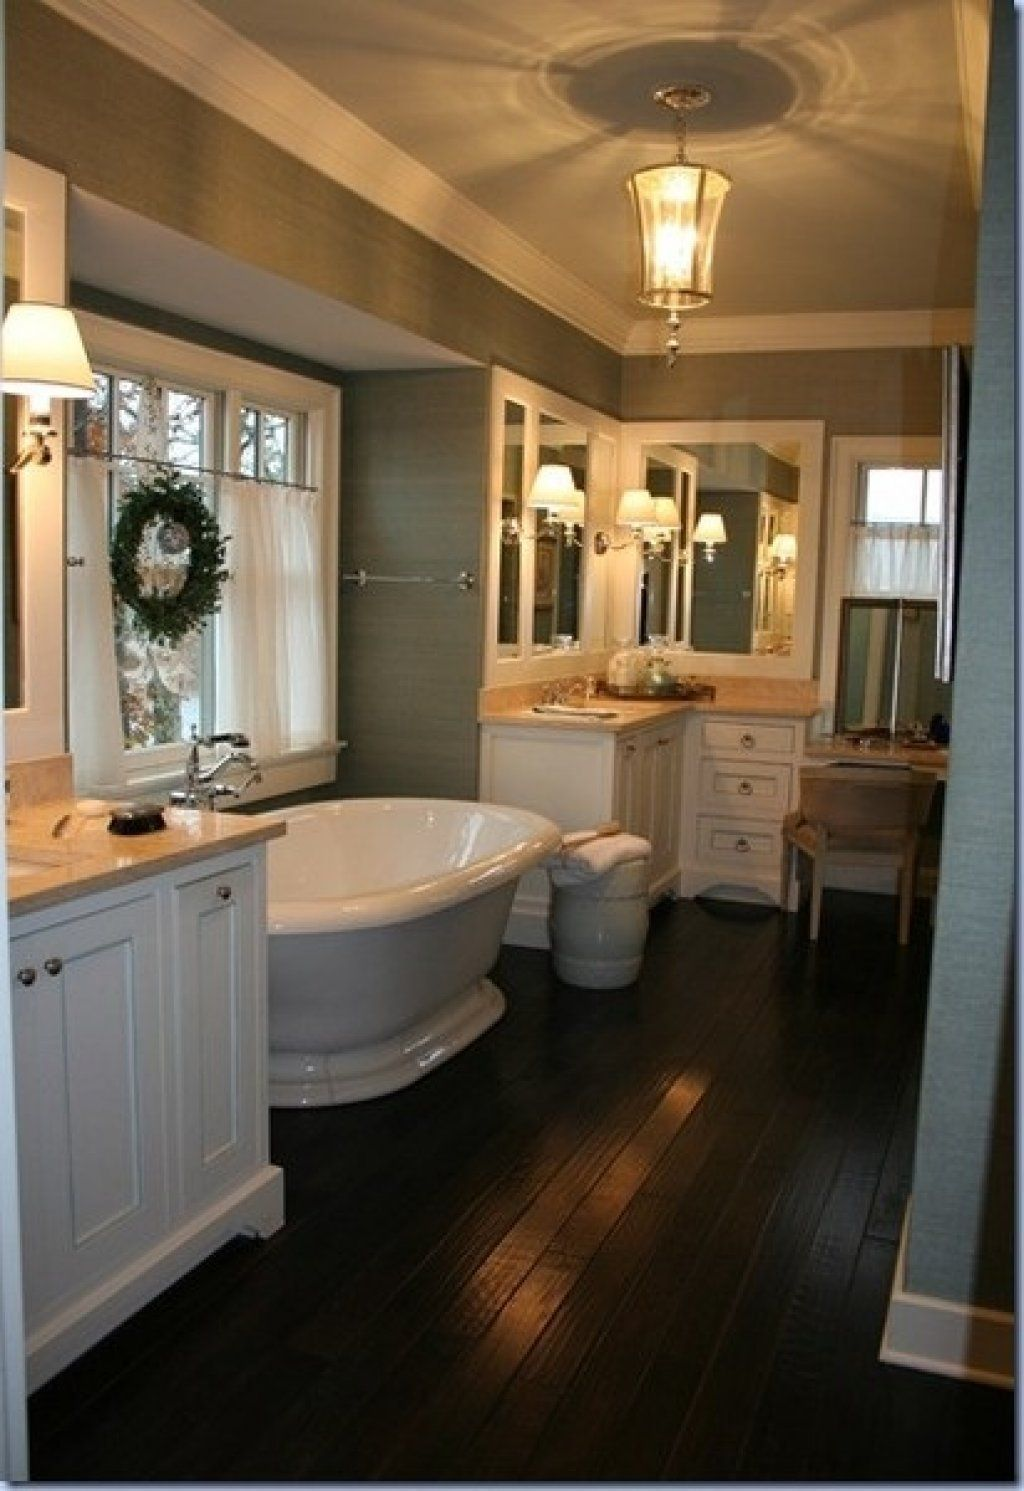 Home Channel Tv  Home Videos  Home Design  Virtual Tour  House Extraordinary Virtual Bathroom Design Design Ideas